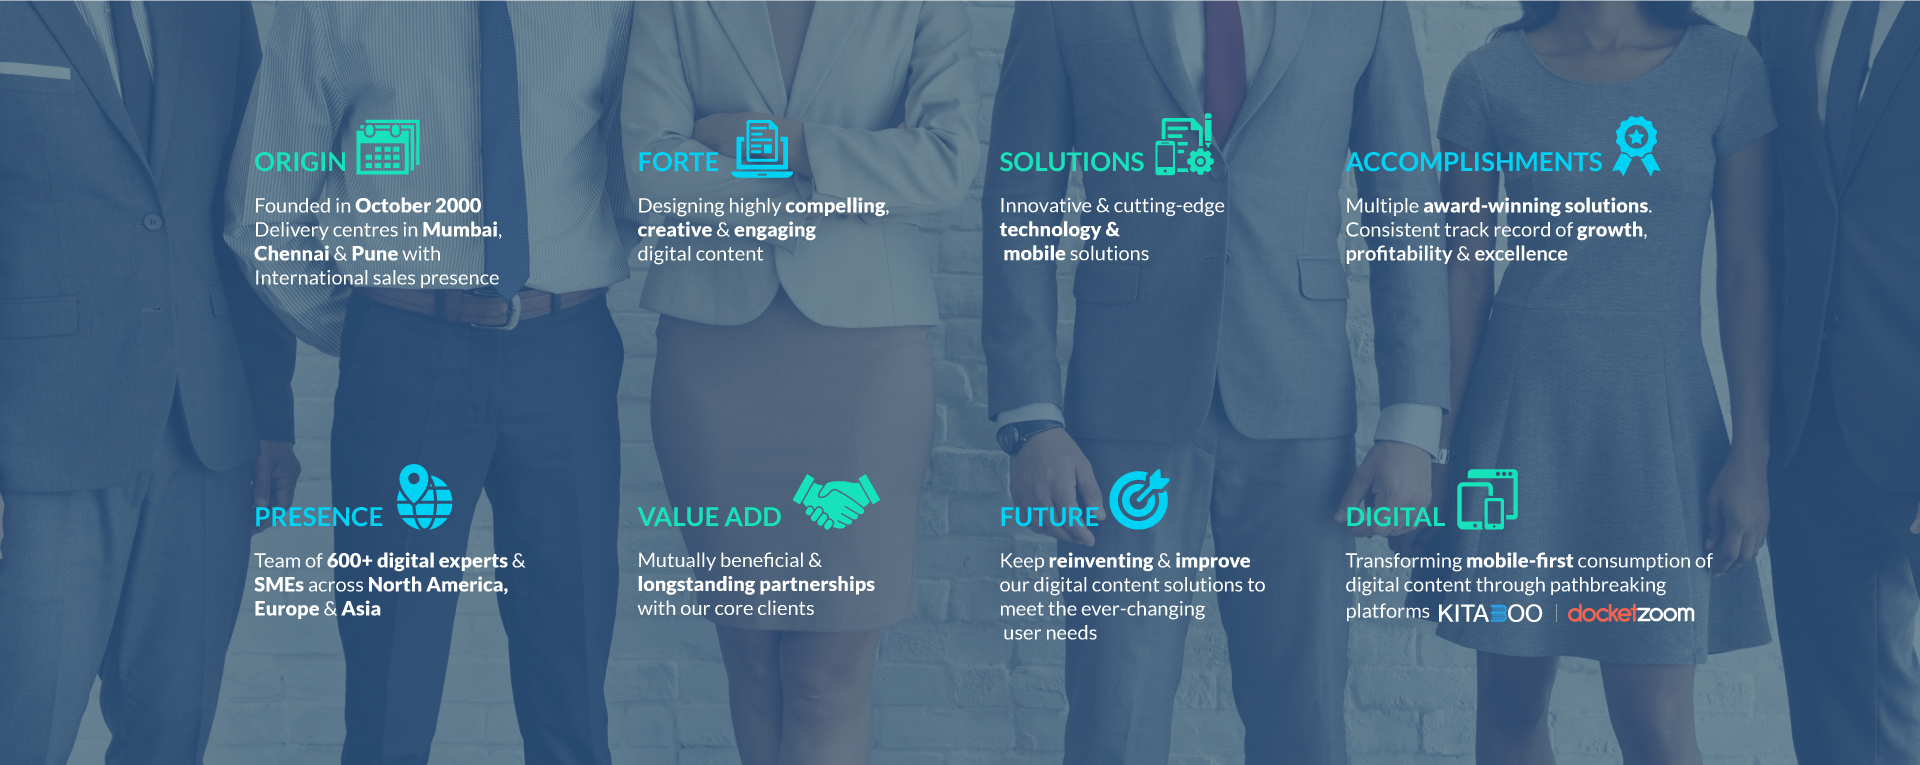 A short description of Hurix Digital which includes the origin, forte, solutions, accomplishments, presence, value add, digital products, and future of the organization.